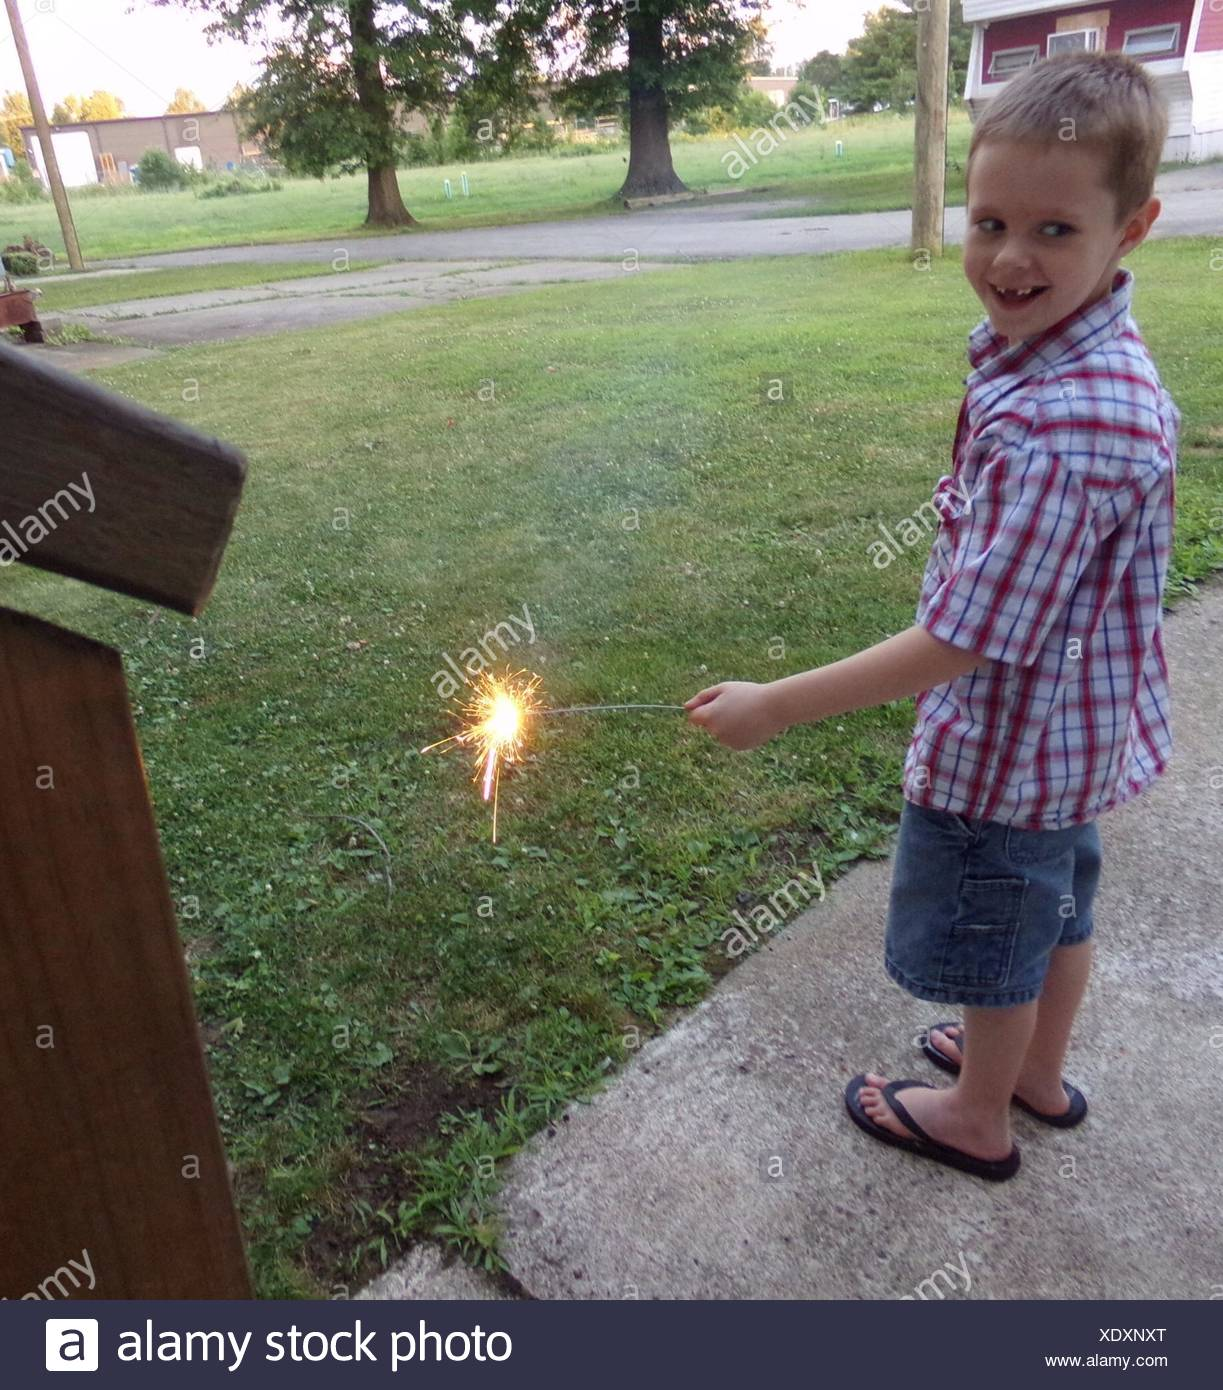 Full Length Of Happy Boy Playing With Sparkler In Yard - Stock Image